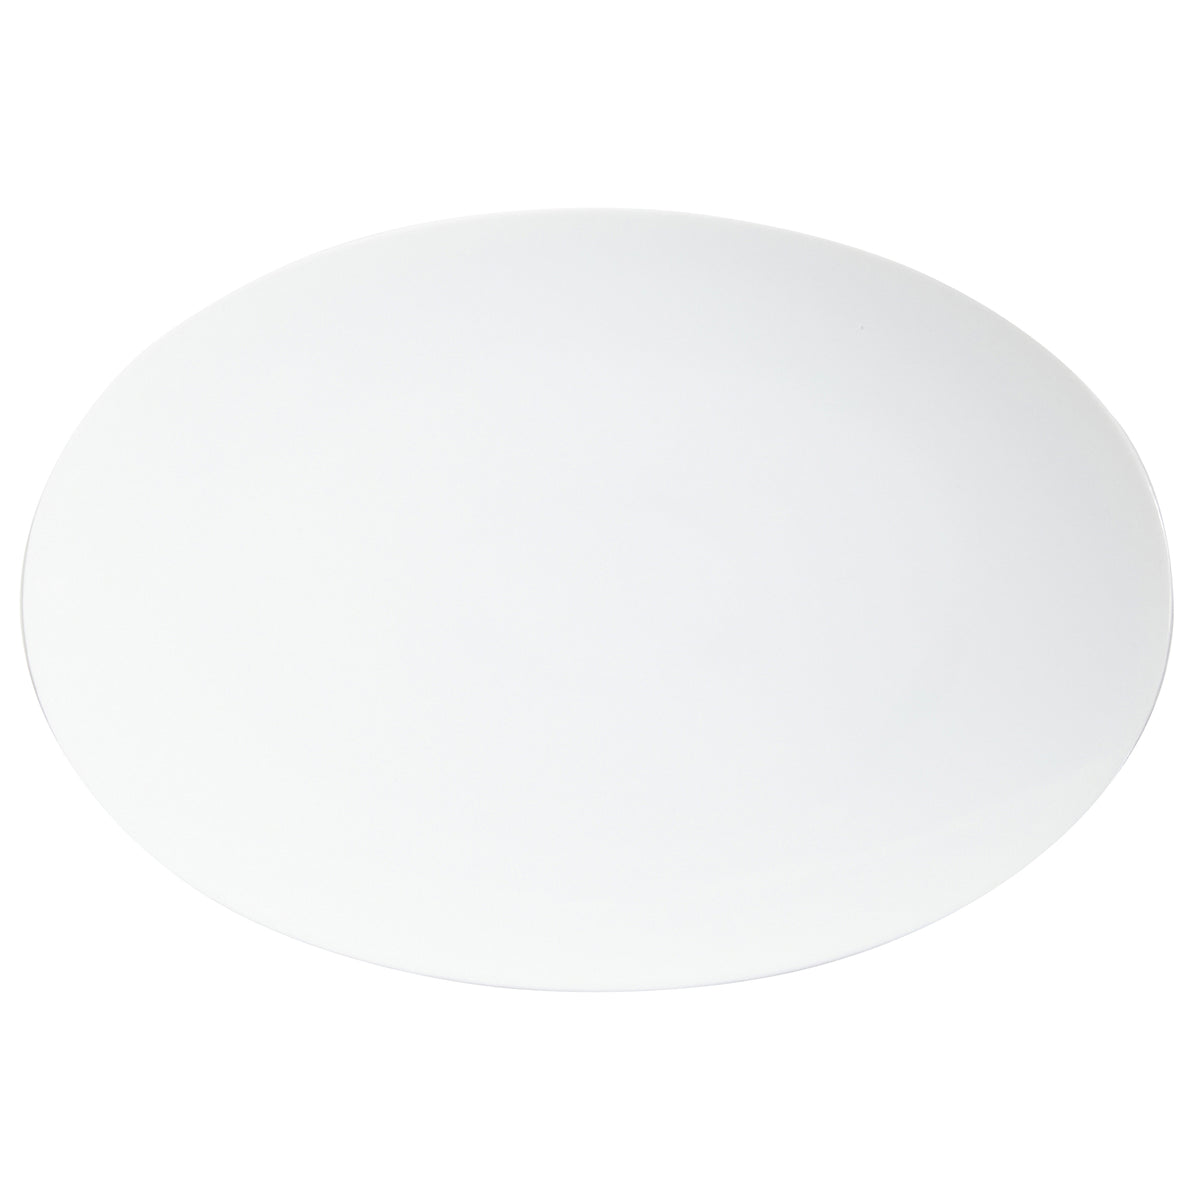 Tac 02 White Porcelain Platter Medium